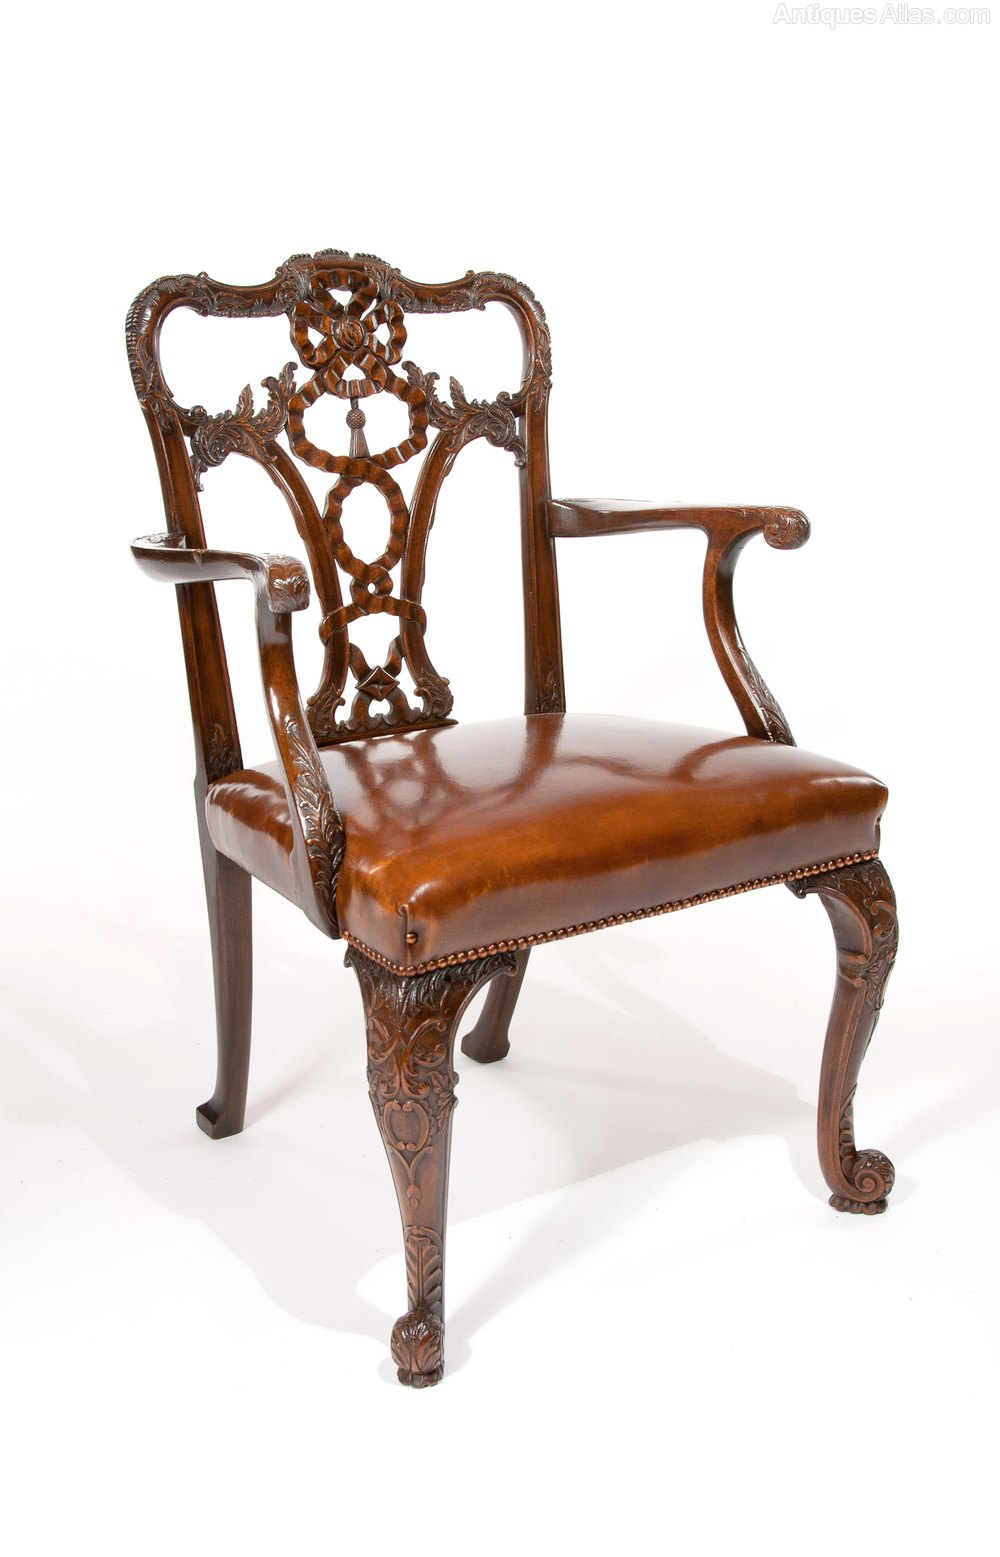 An Extremely Well Carved 19th Century Desk Chair